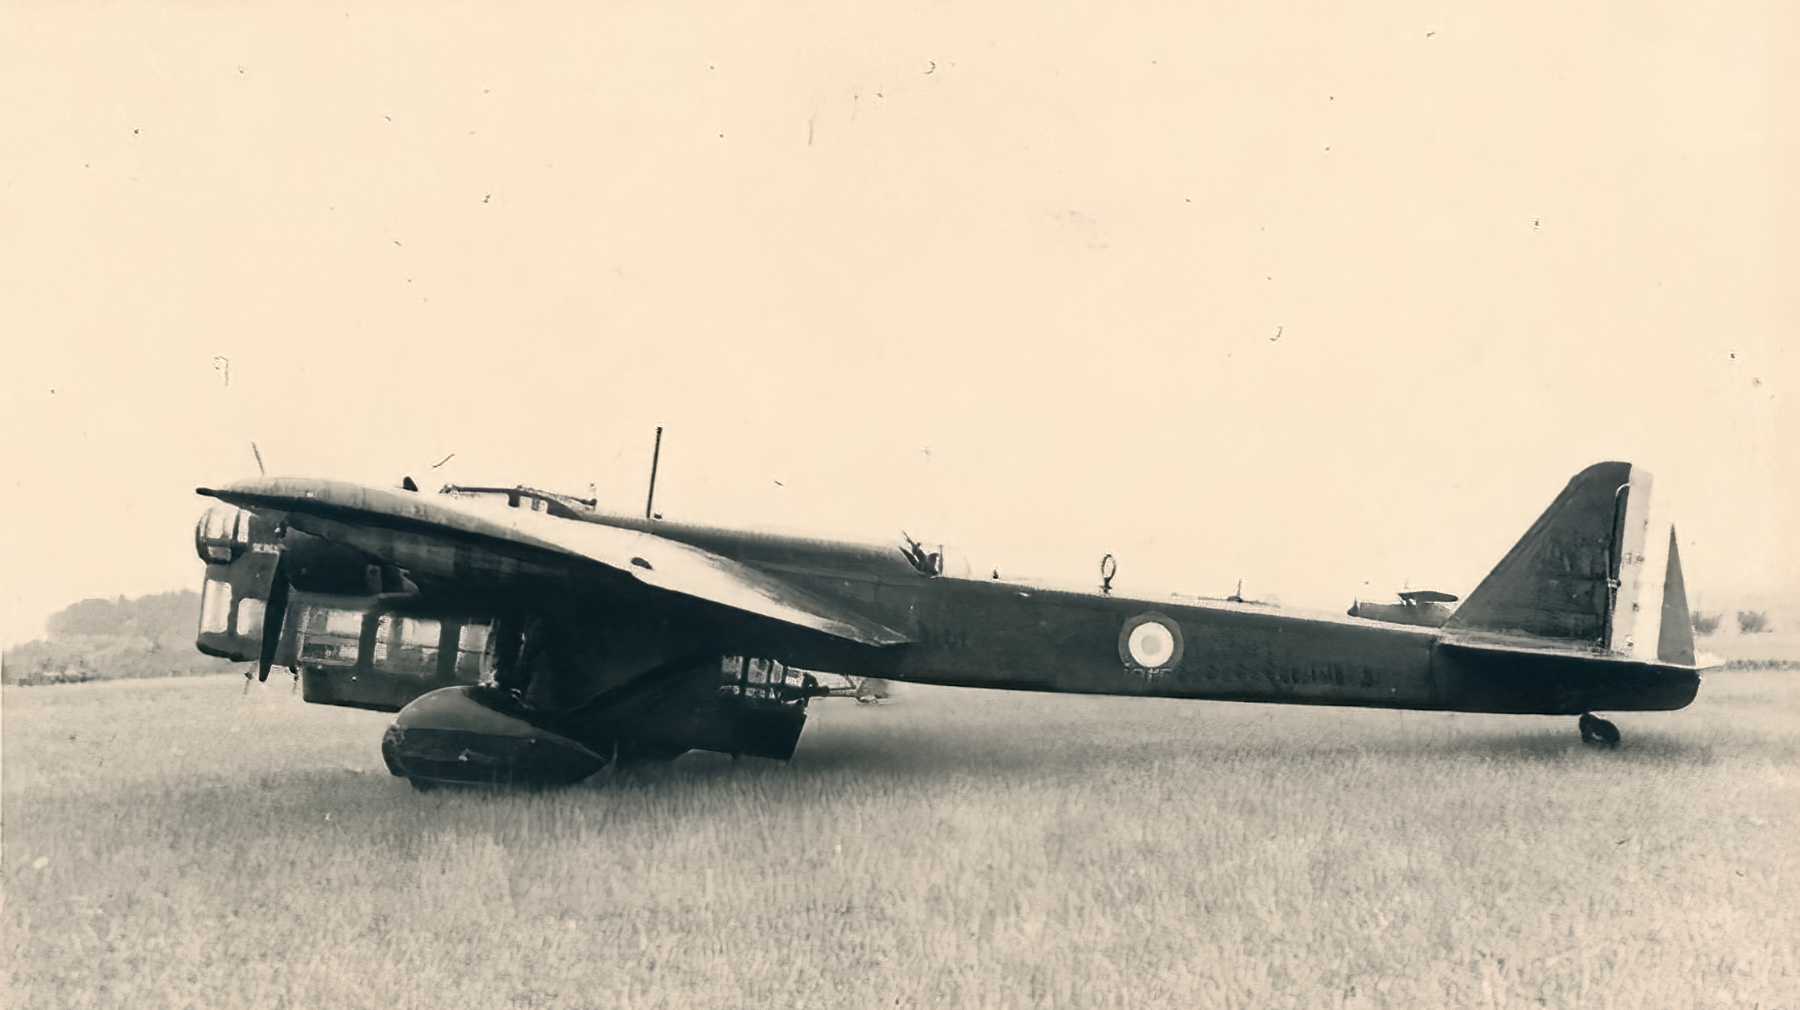 French Airforce Amiot 143 stands ready for deployment France 1940 ebay 01